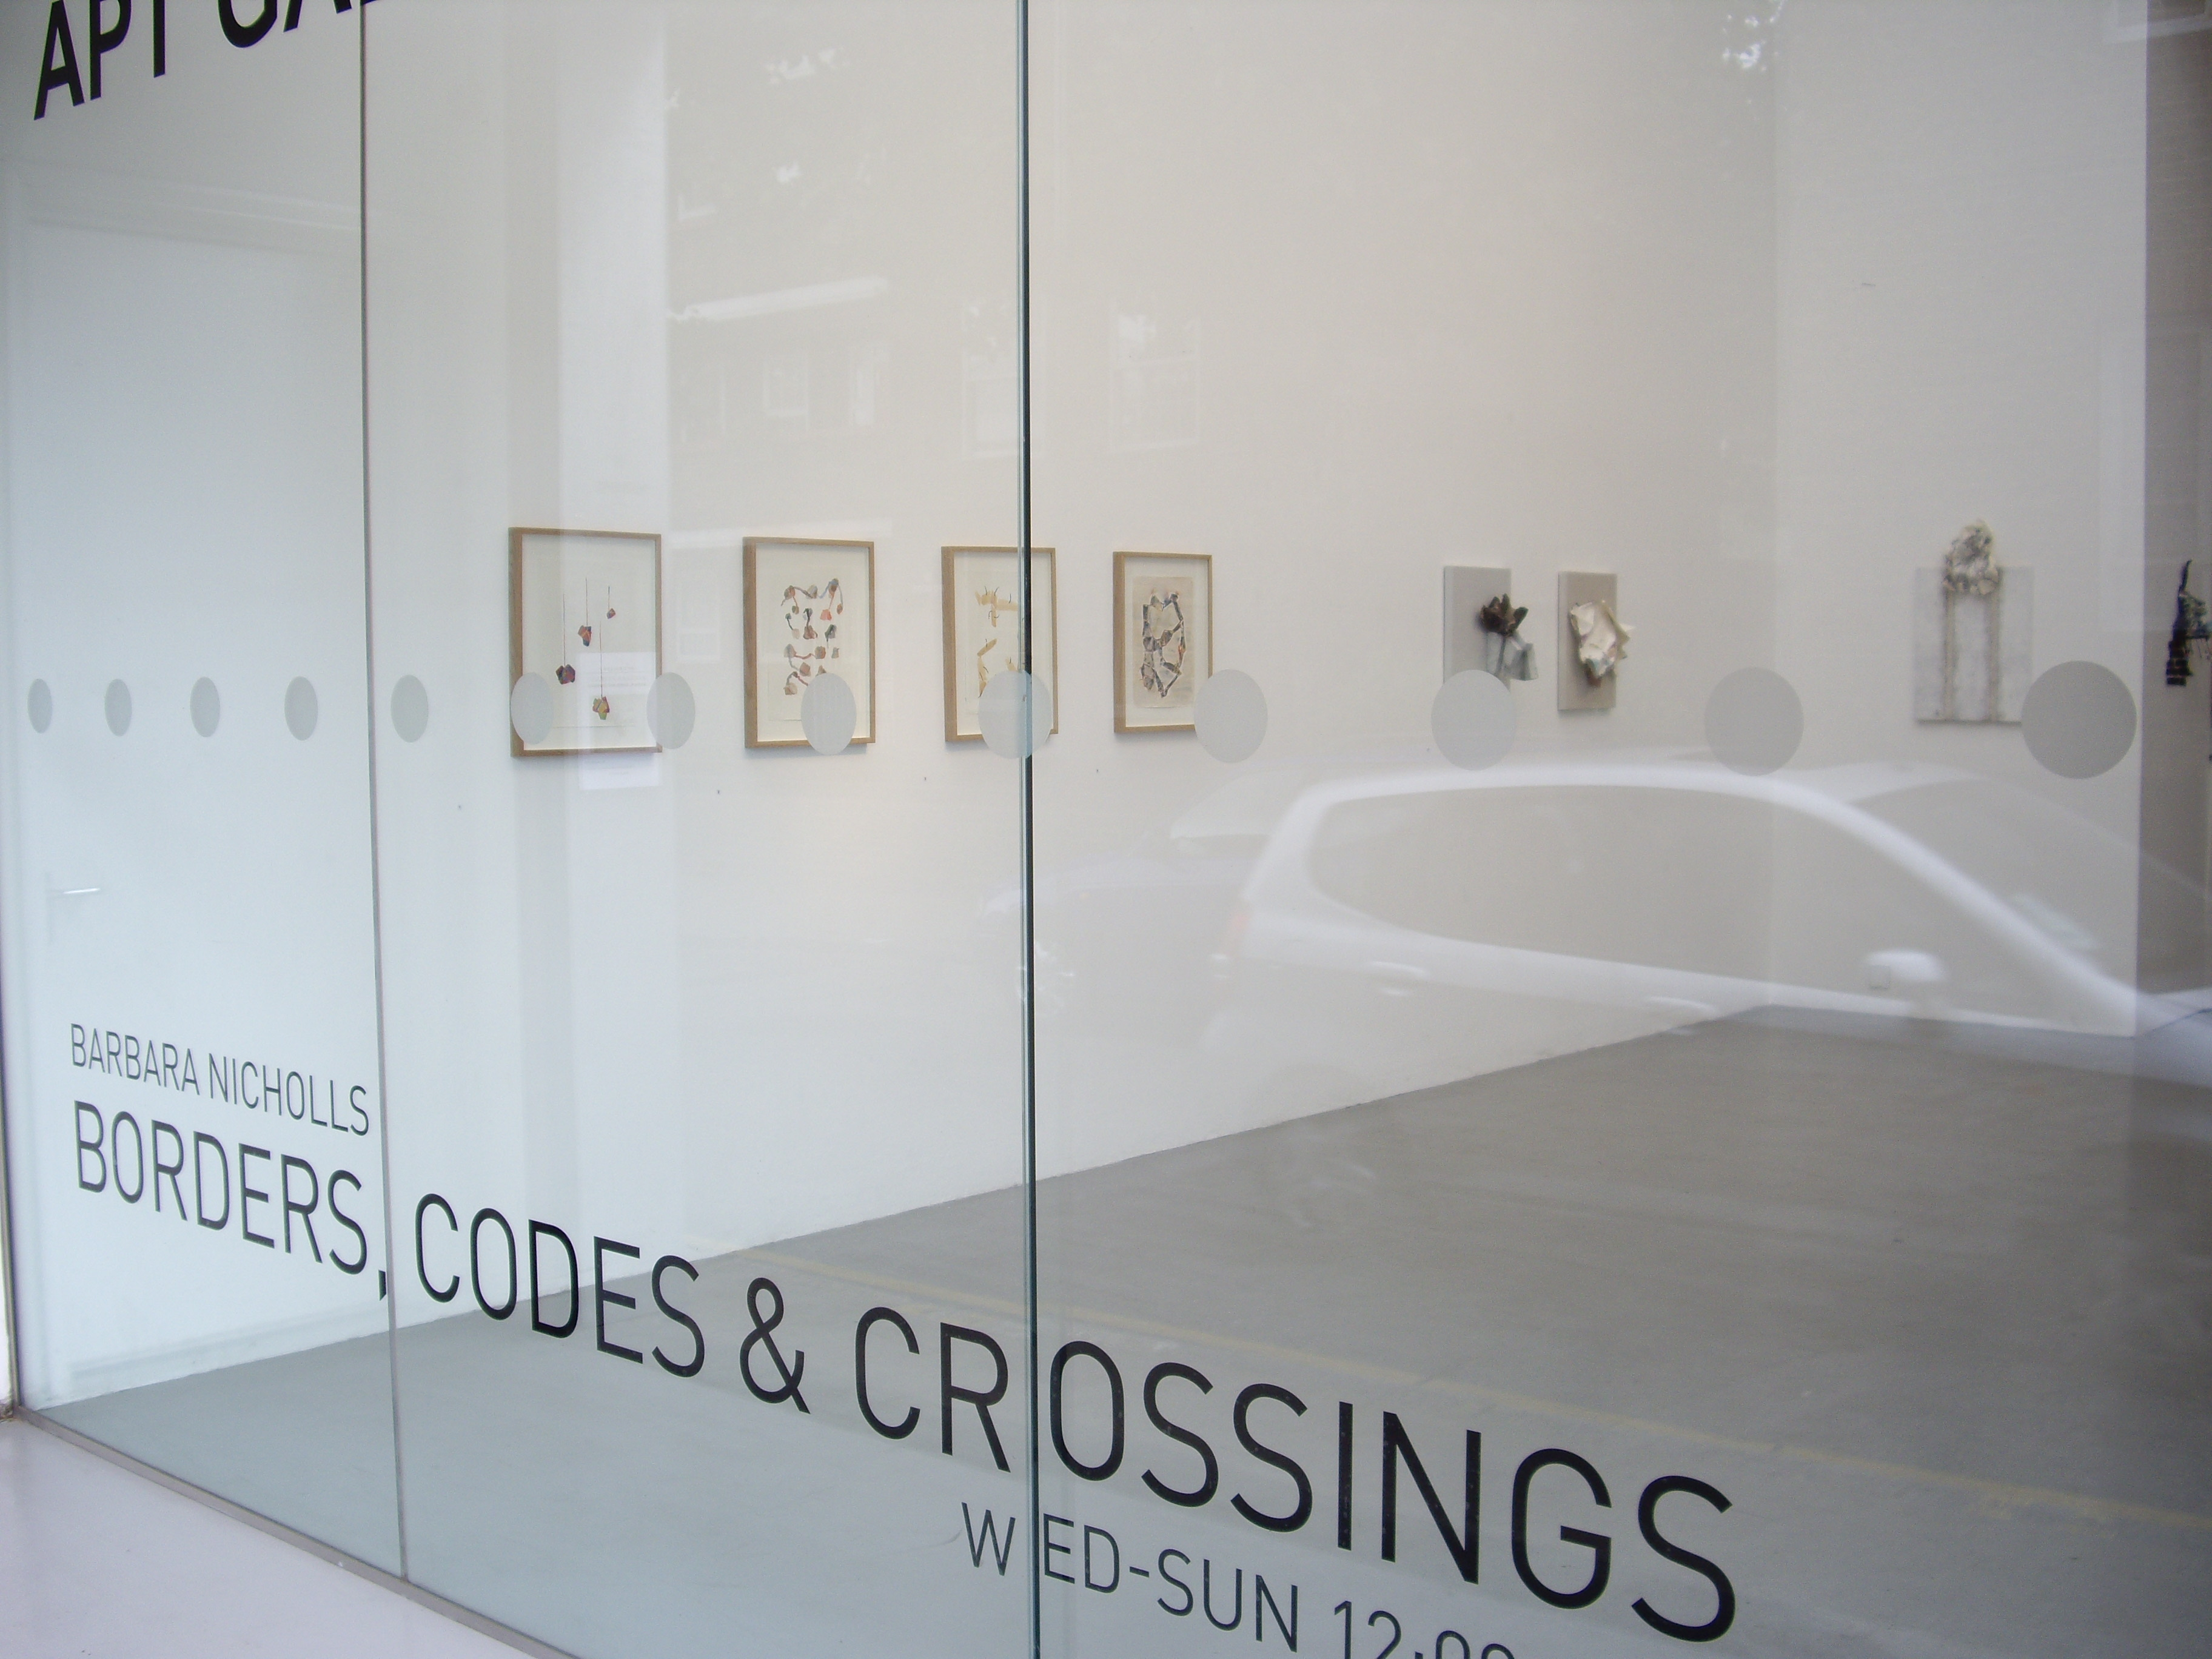 A.P.T Gallery, London